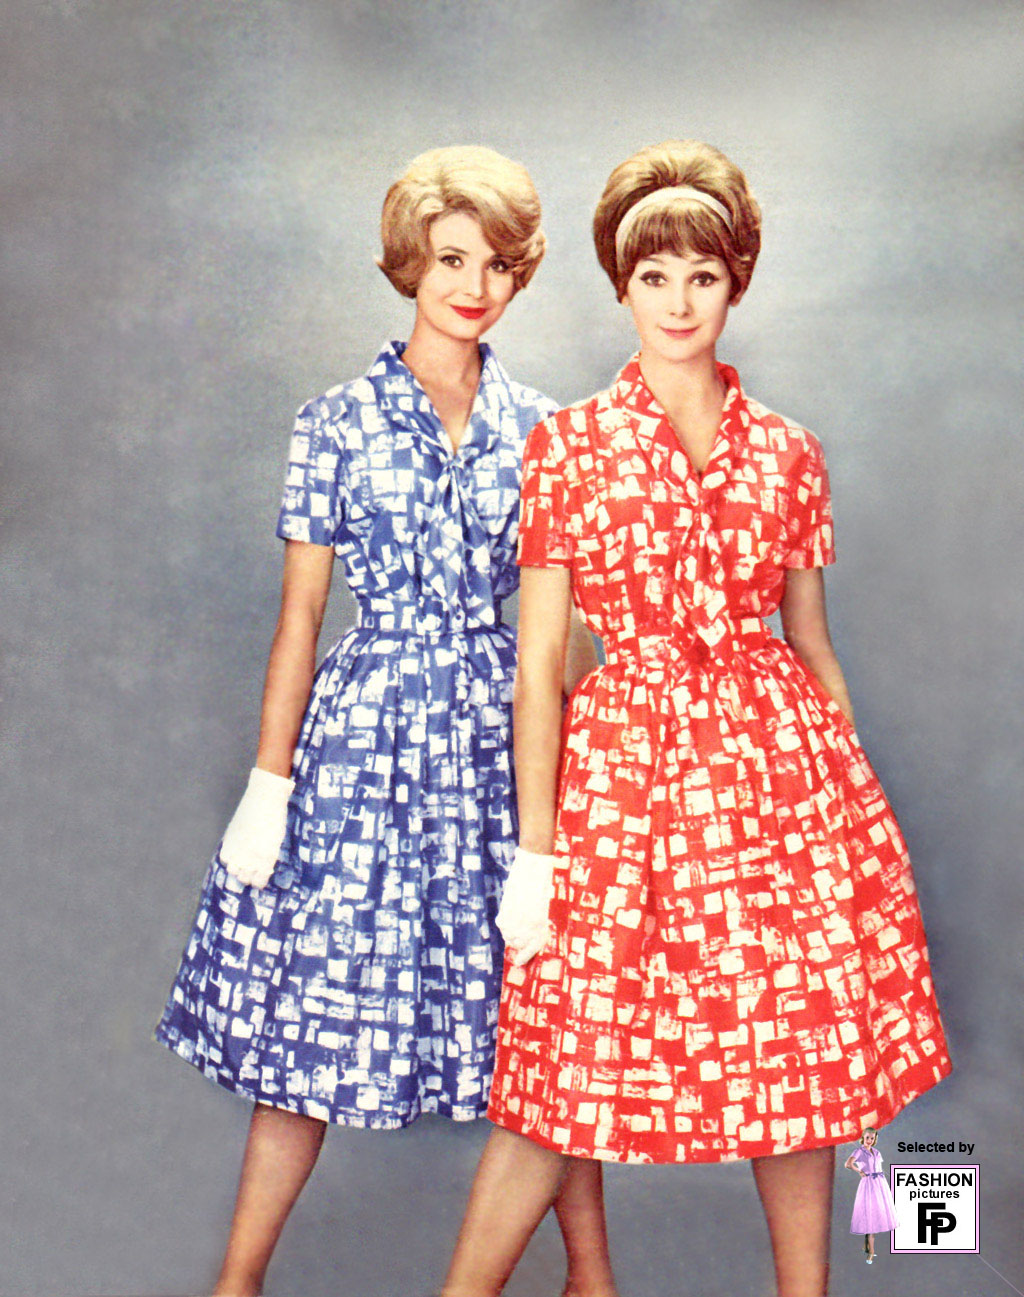 1960s fashion The 1960s were greatly transitional the decade opened with a continuation of the 1950s silhouette but ten years later the look was the virtual opposite in.